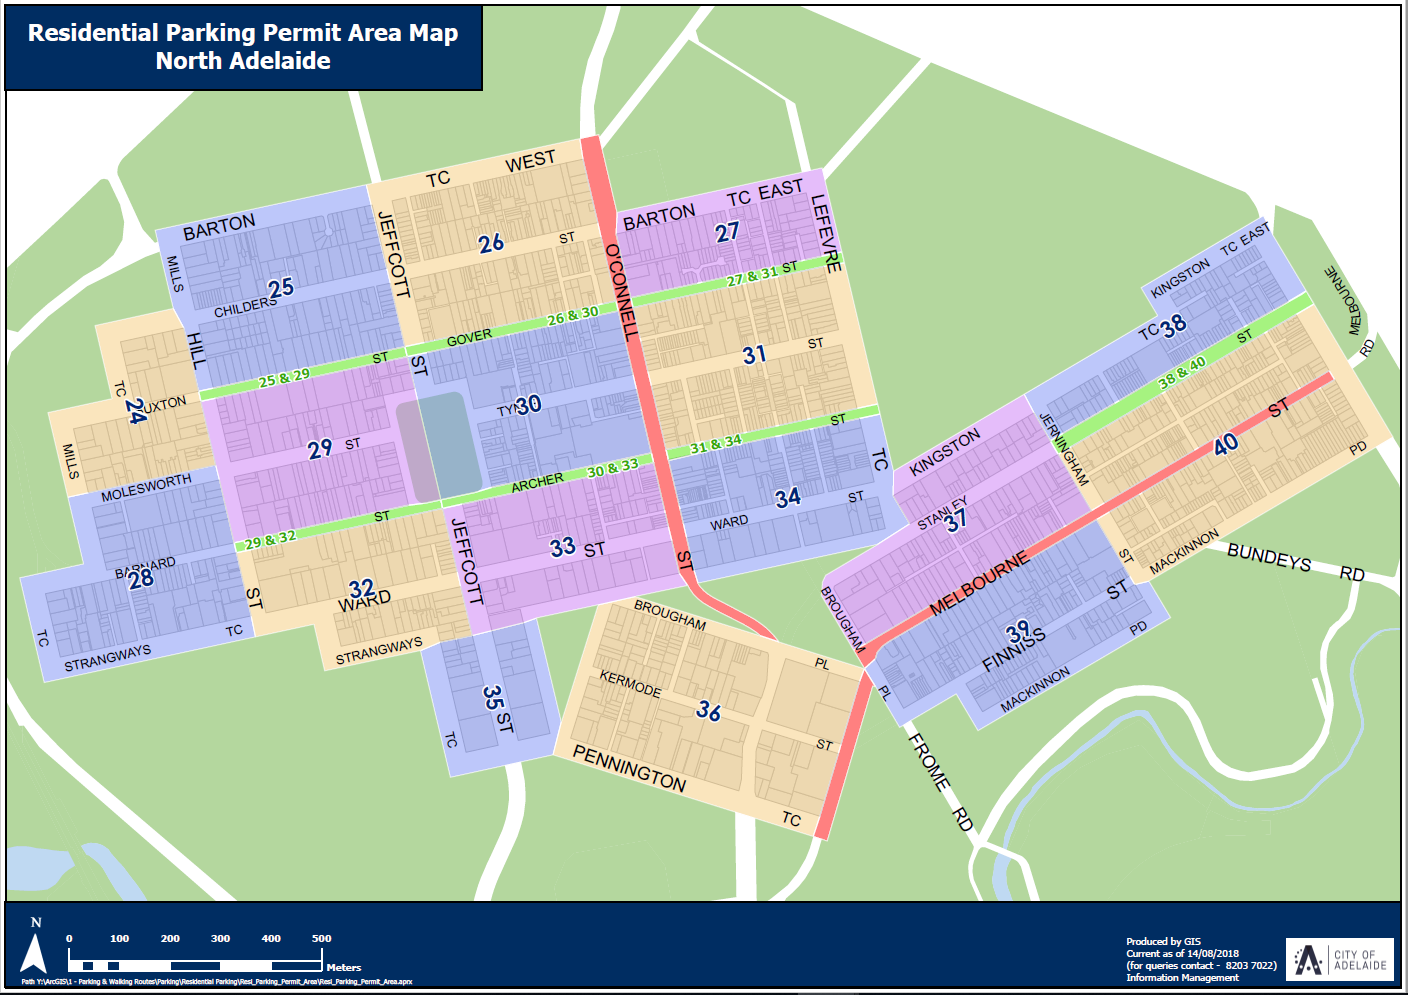 Map north adelaide parking areas